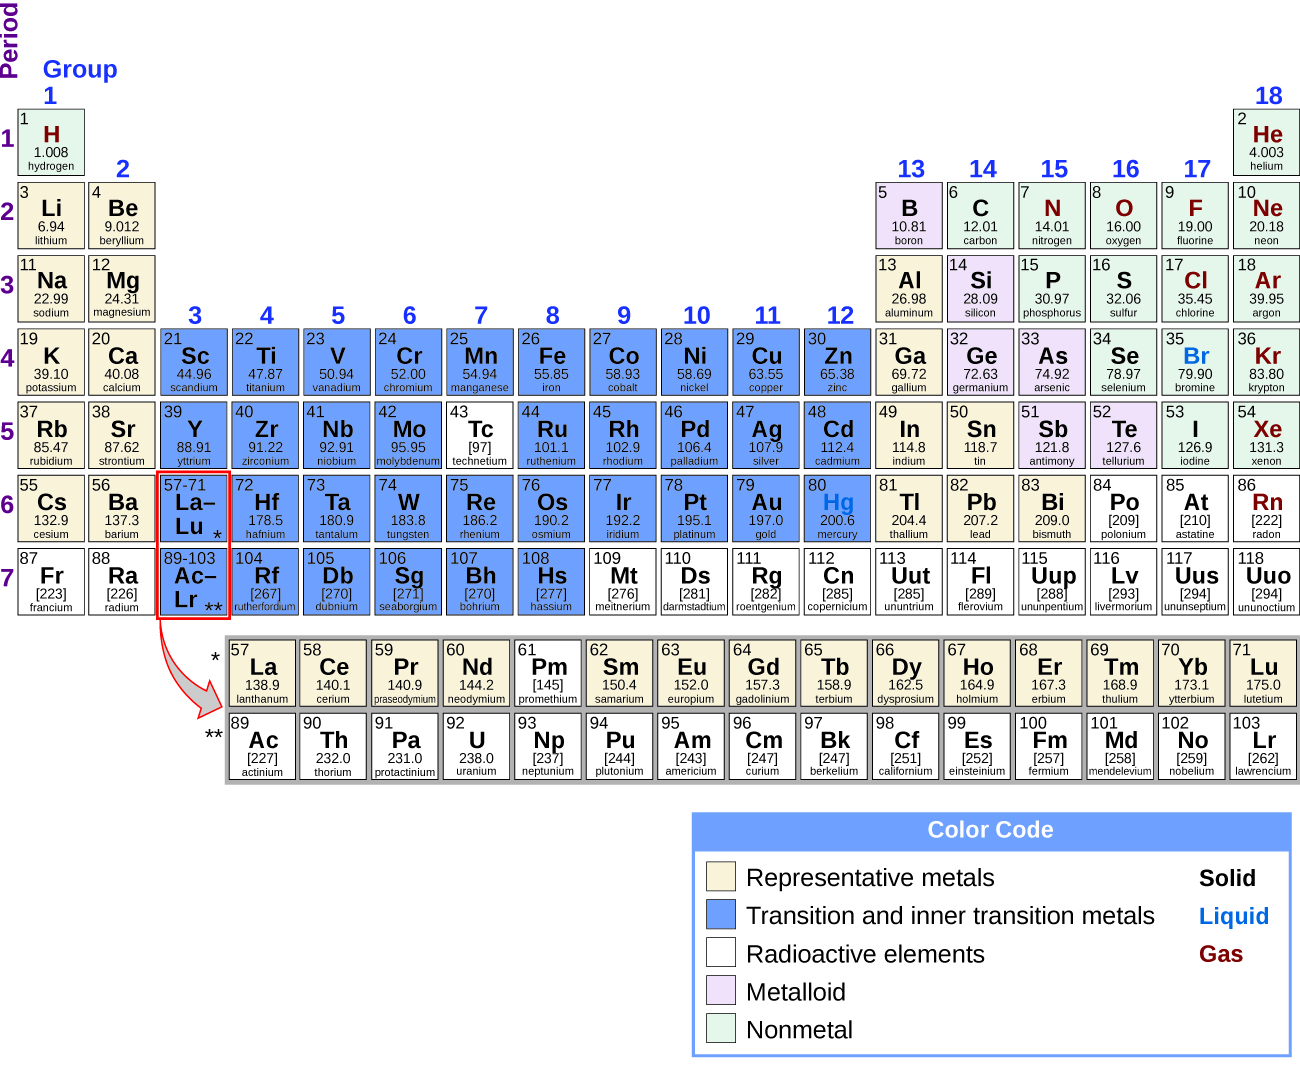 The Periodic Table Of Elements Is Shown 18 Columns Are Labeled Group